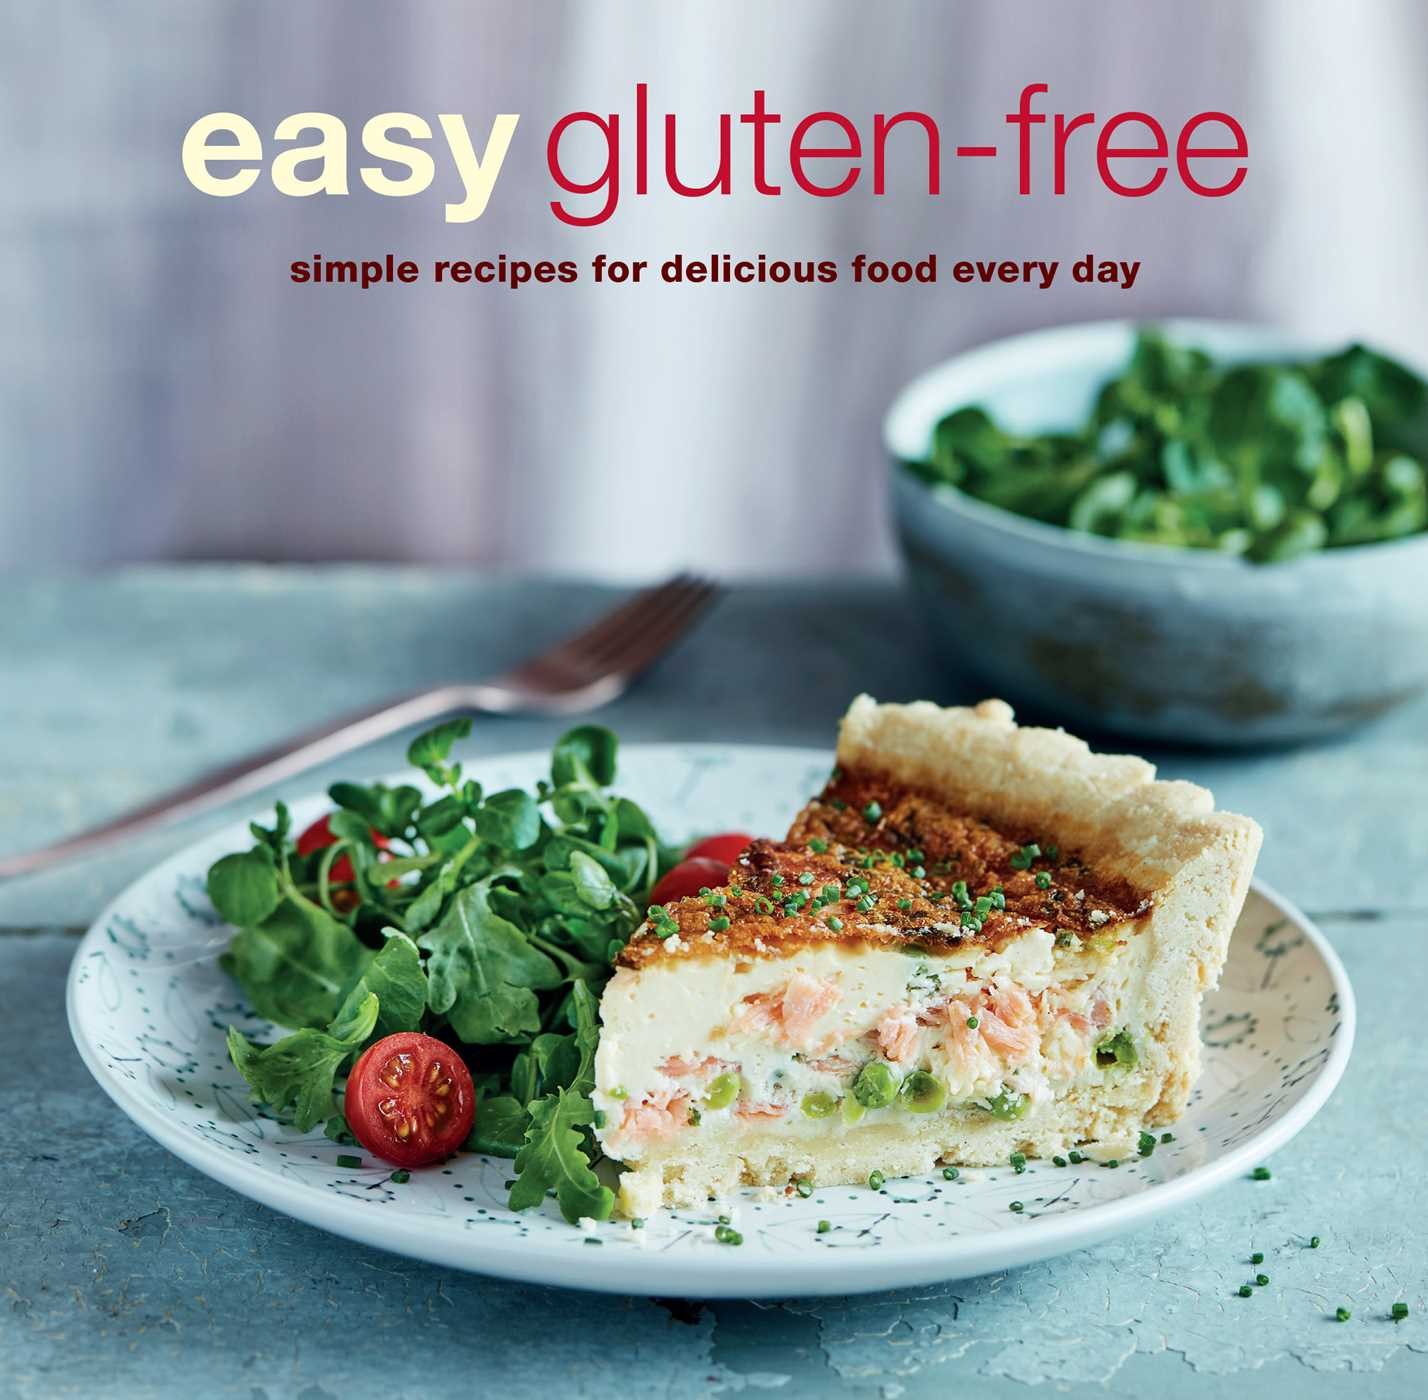 Easy gluten free book by to be announced official publisher page easy gluten free 9781849759403 hr forumfinder Choice Image